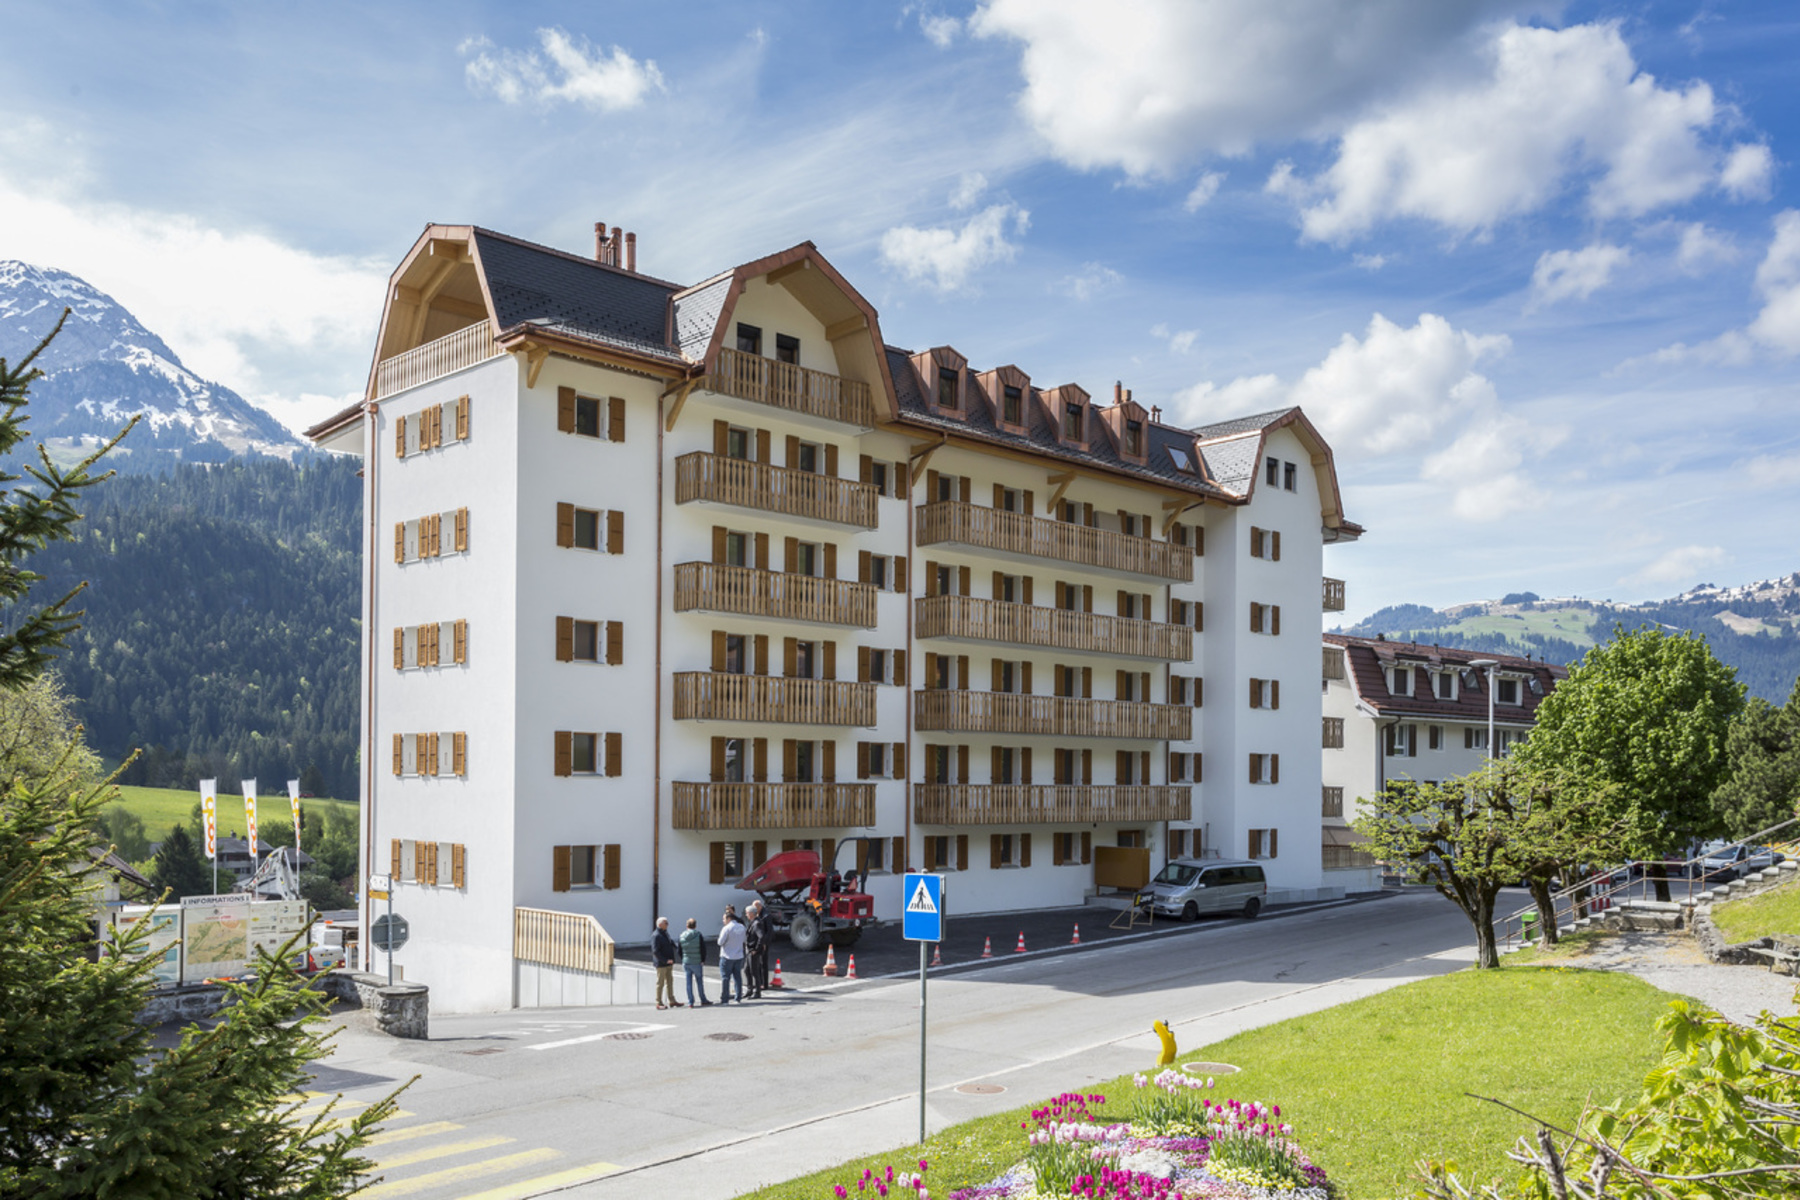 Additional photo for property listing at For sale, Condominium apartment, 1660 Château-d'Oex, Réf 7476  Chateau Doex, Vaud 1660 Switzerland